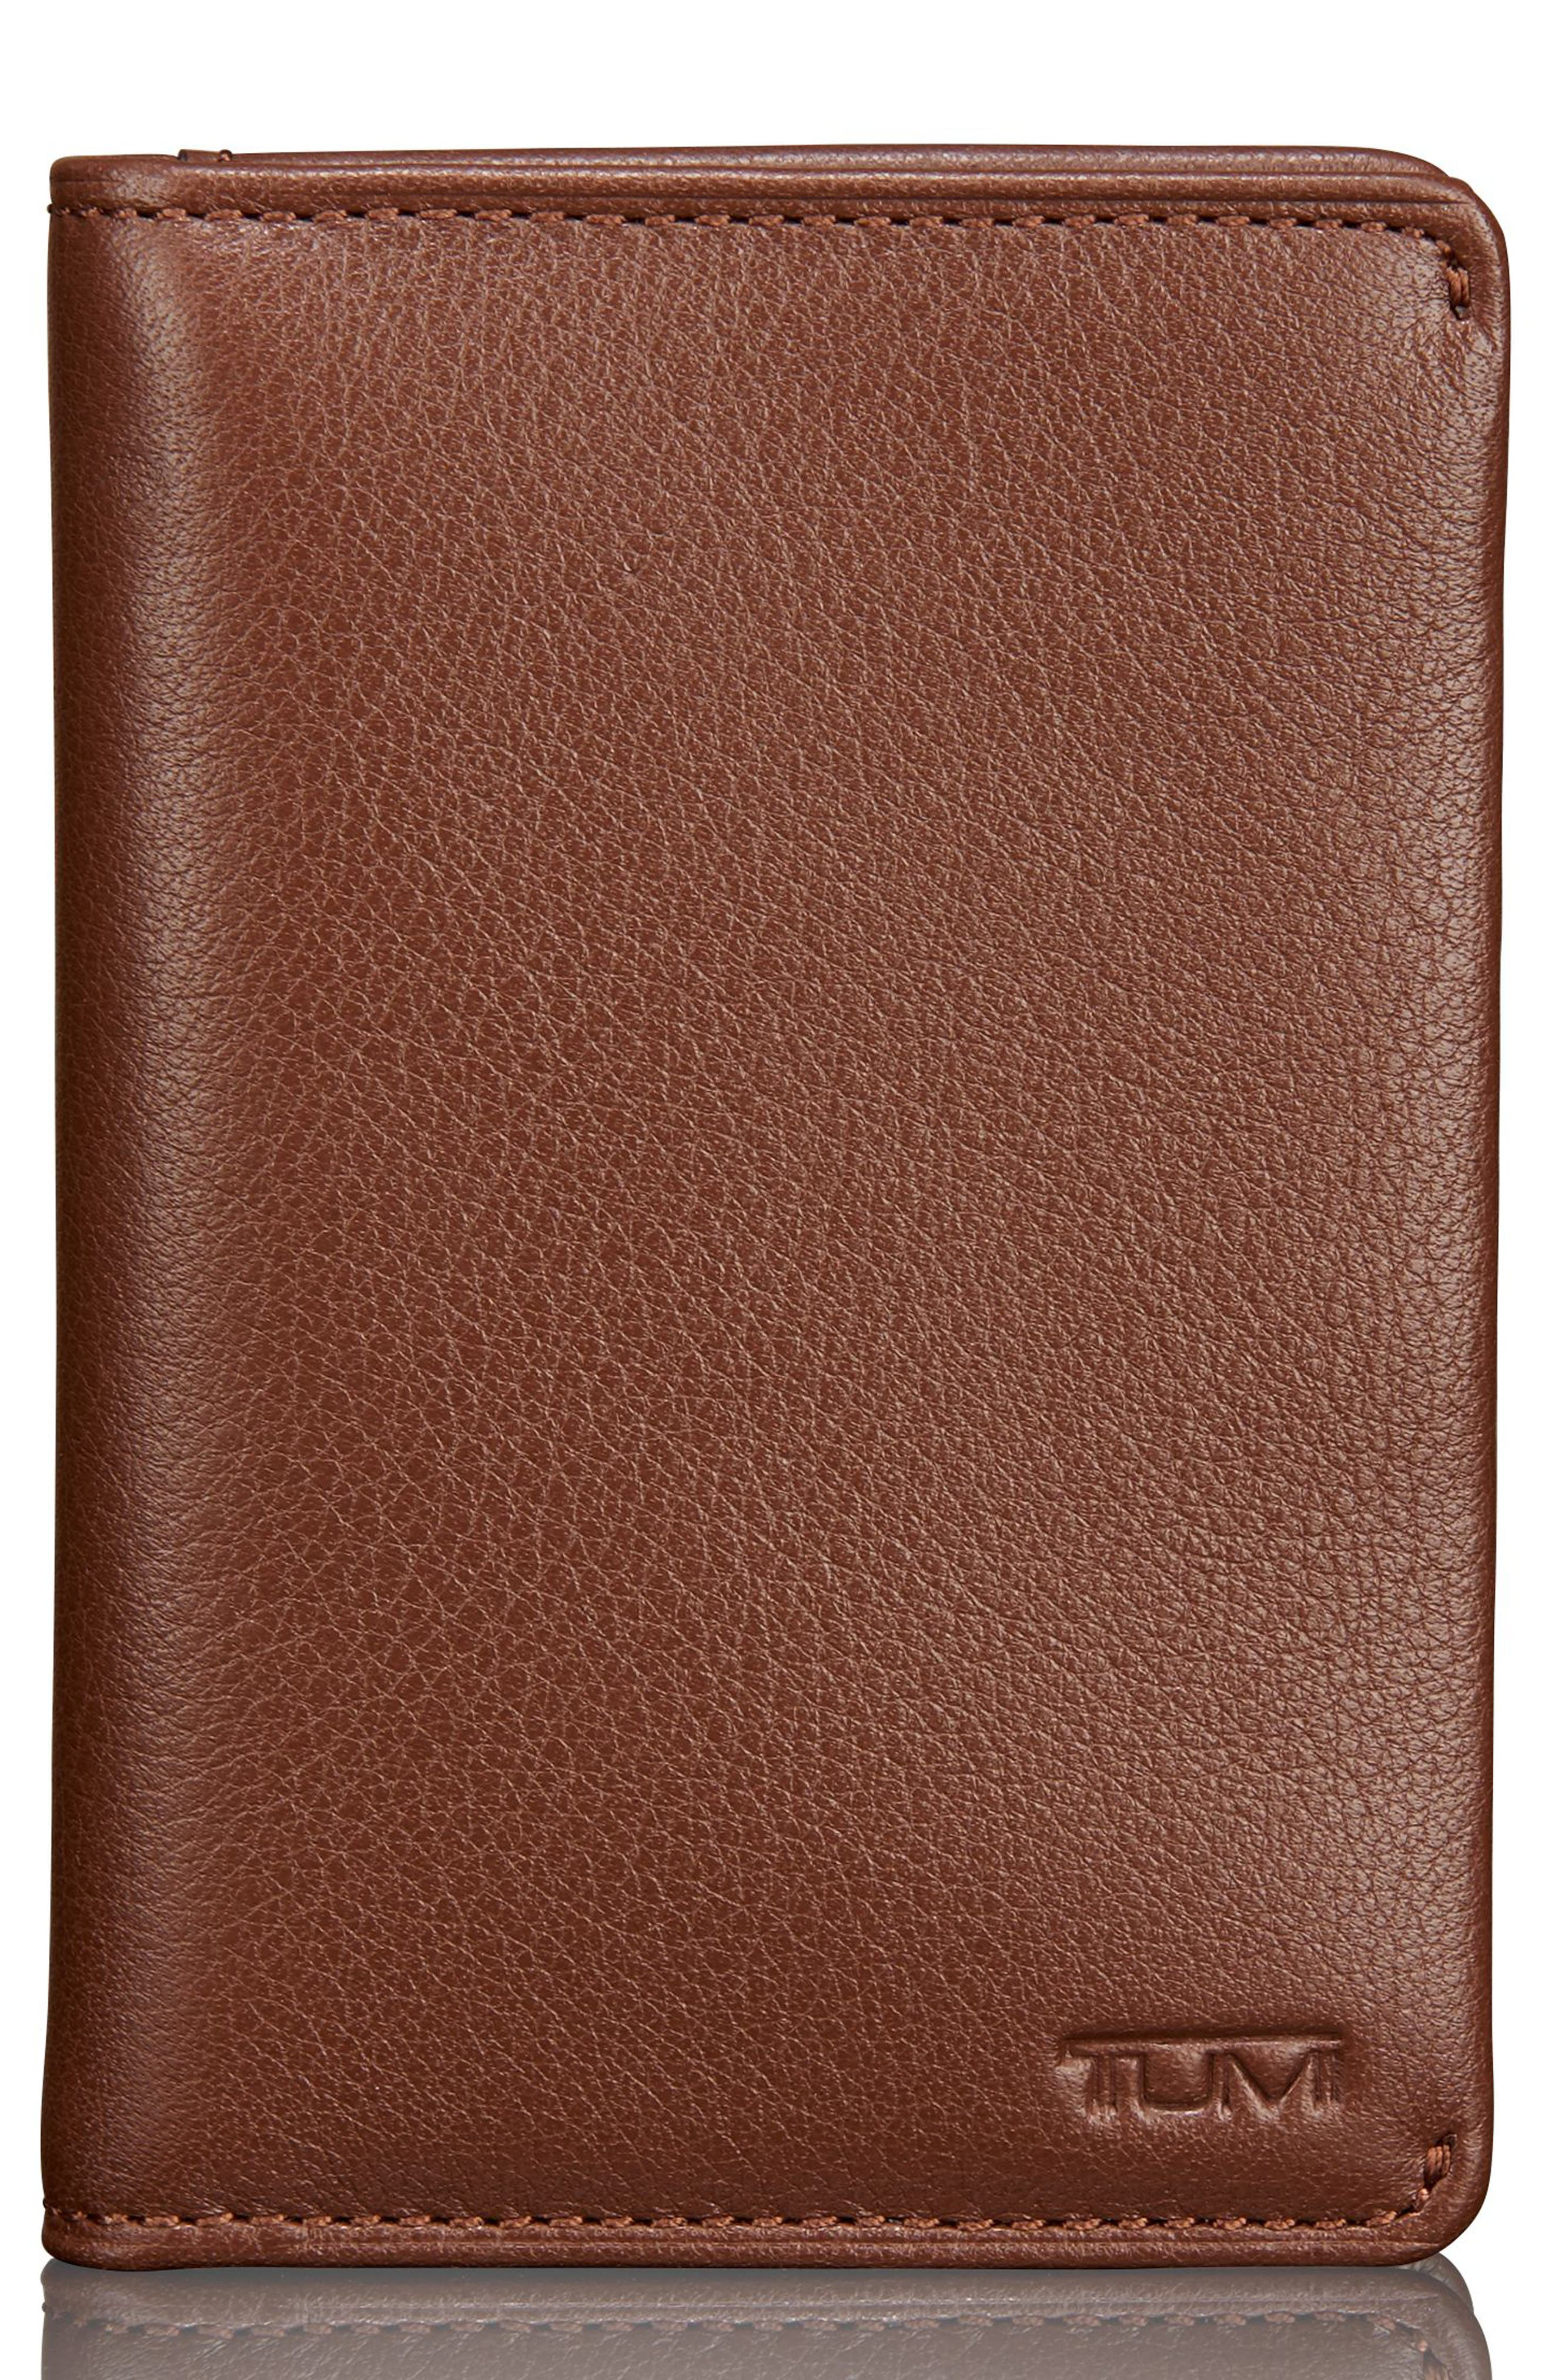 Alternate Image 1 Selected - Tumi Leather Card Case